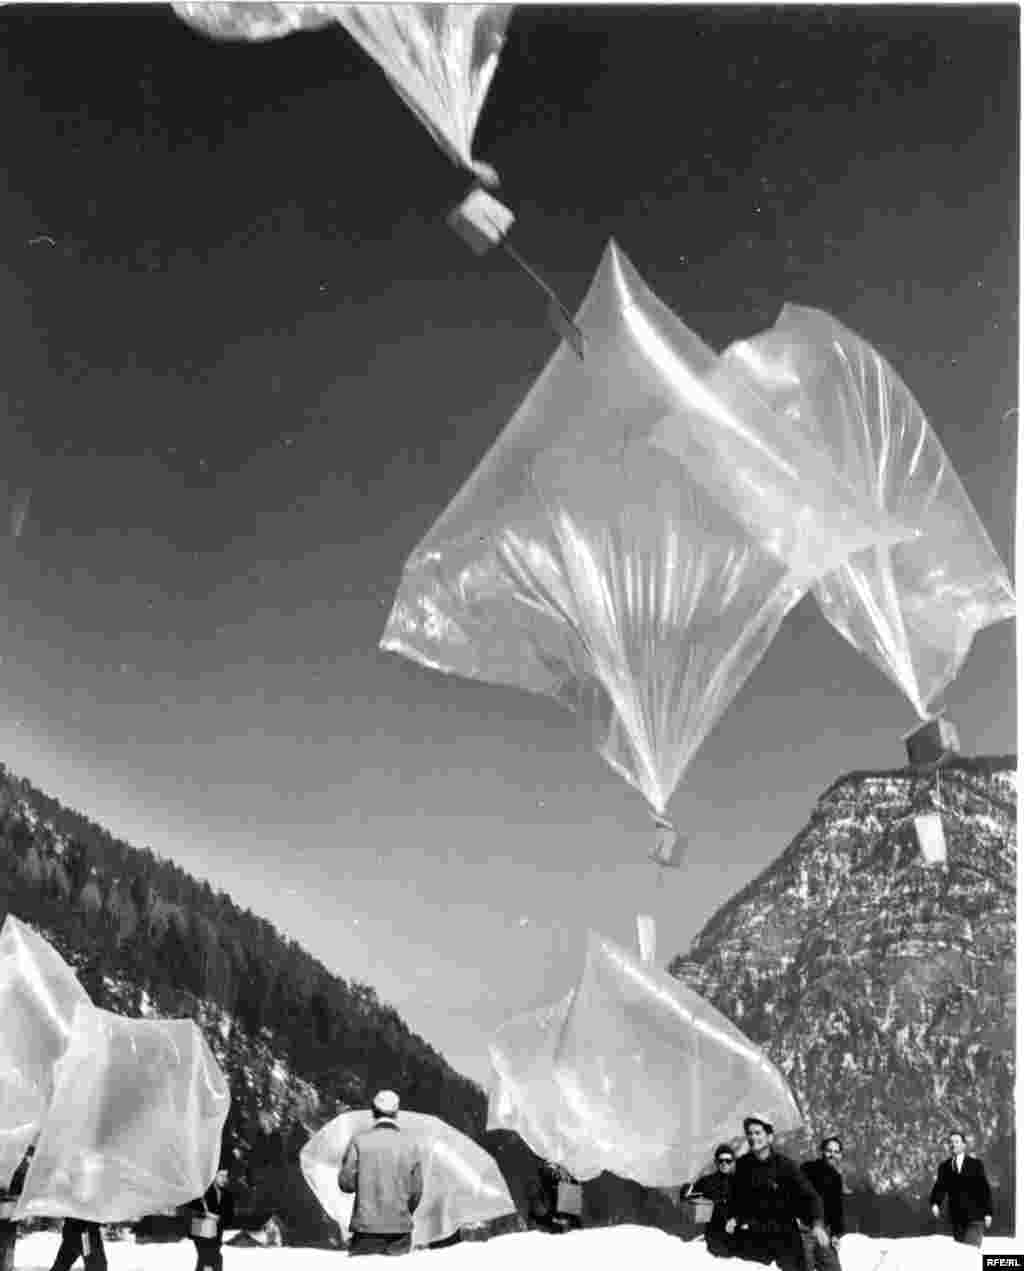 From 1953 to 1956 RFE floated balloons from West Germany filled with news reports over the Iron Curtain.